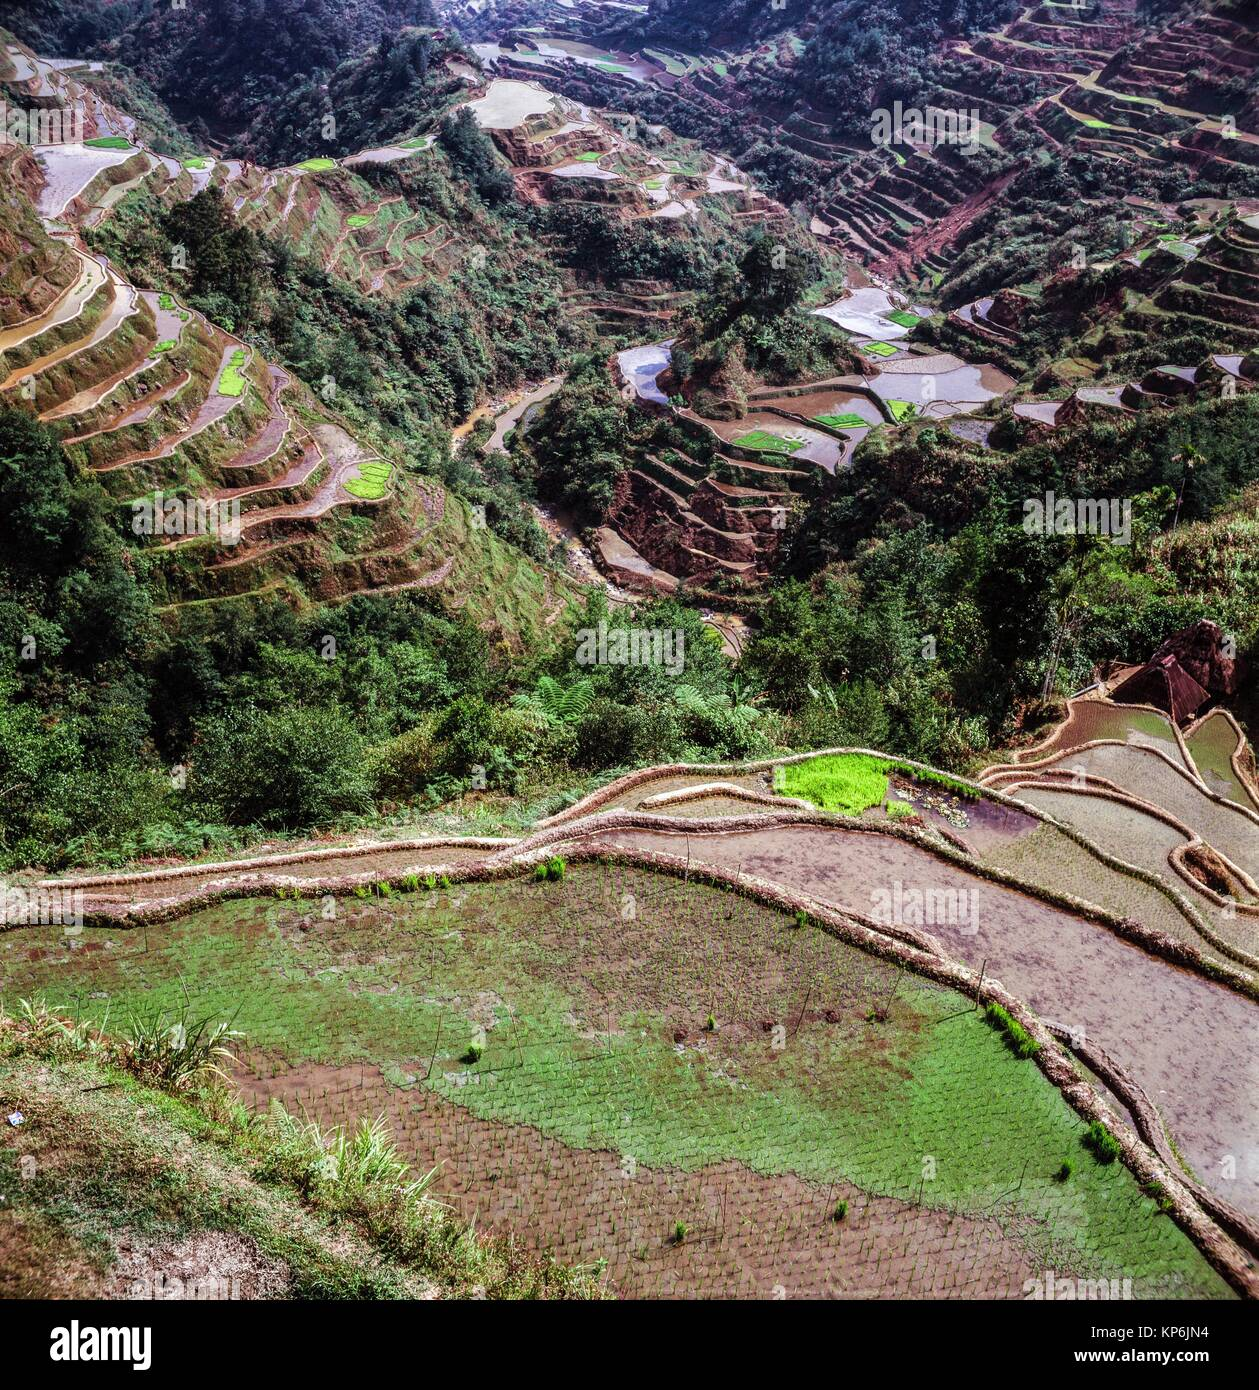 Banaue Rice Terraces, Ifugao Province, northern Luzon, Philippines. - Stock Image